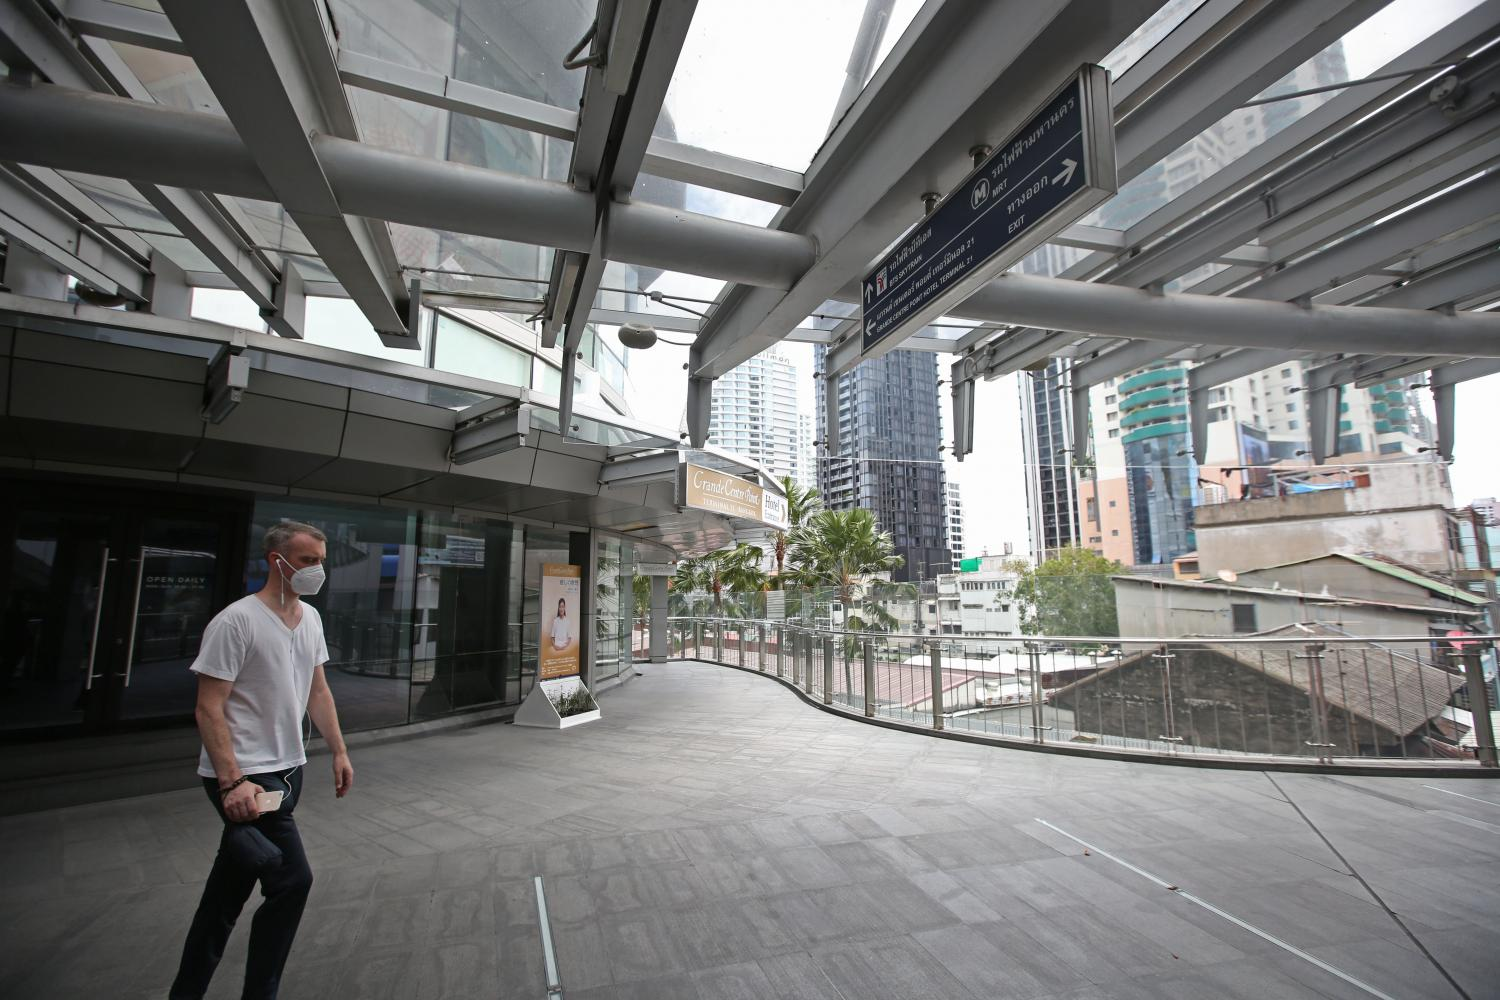 A man walks along the skywalk in front of Terminal 21 mall on Sukhumvit Road, which is nearly empty during the lockdown to curb the spread of the coronavirus.(Photo: Varuth Hirunyatheb)